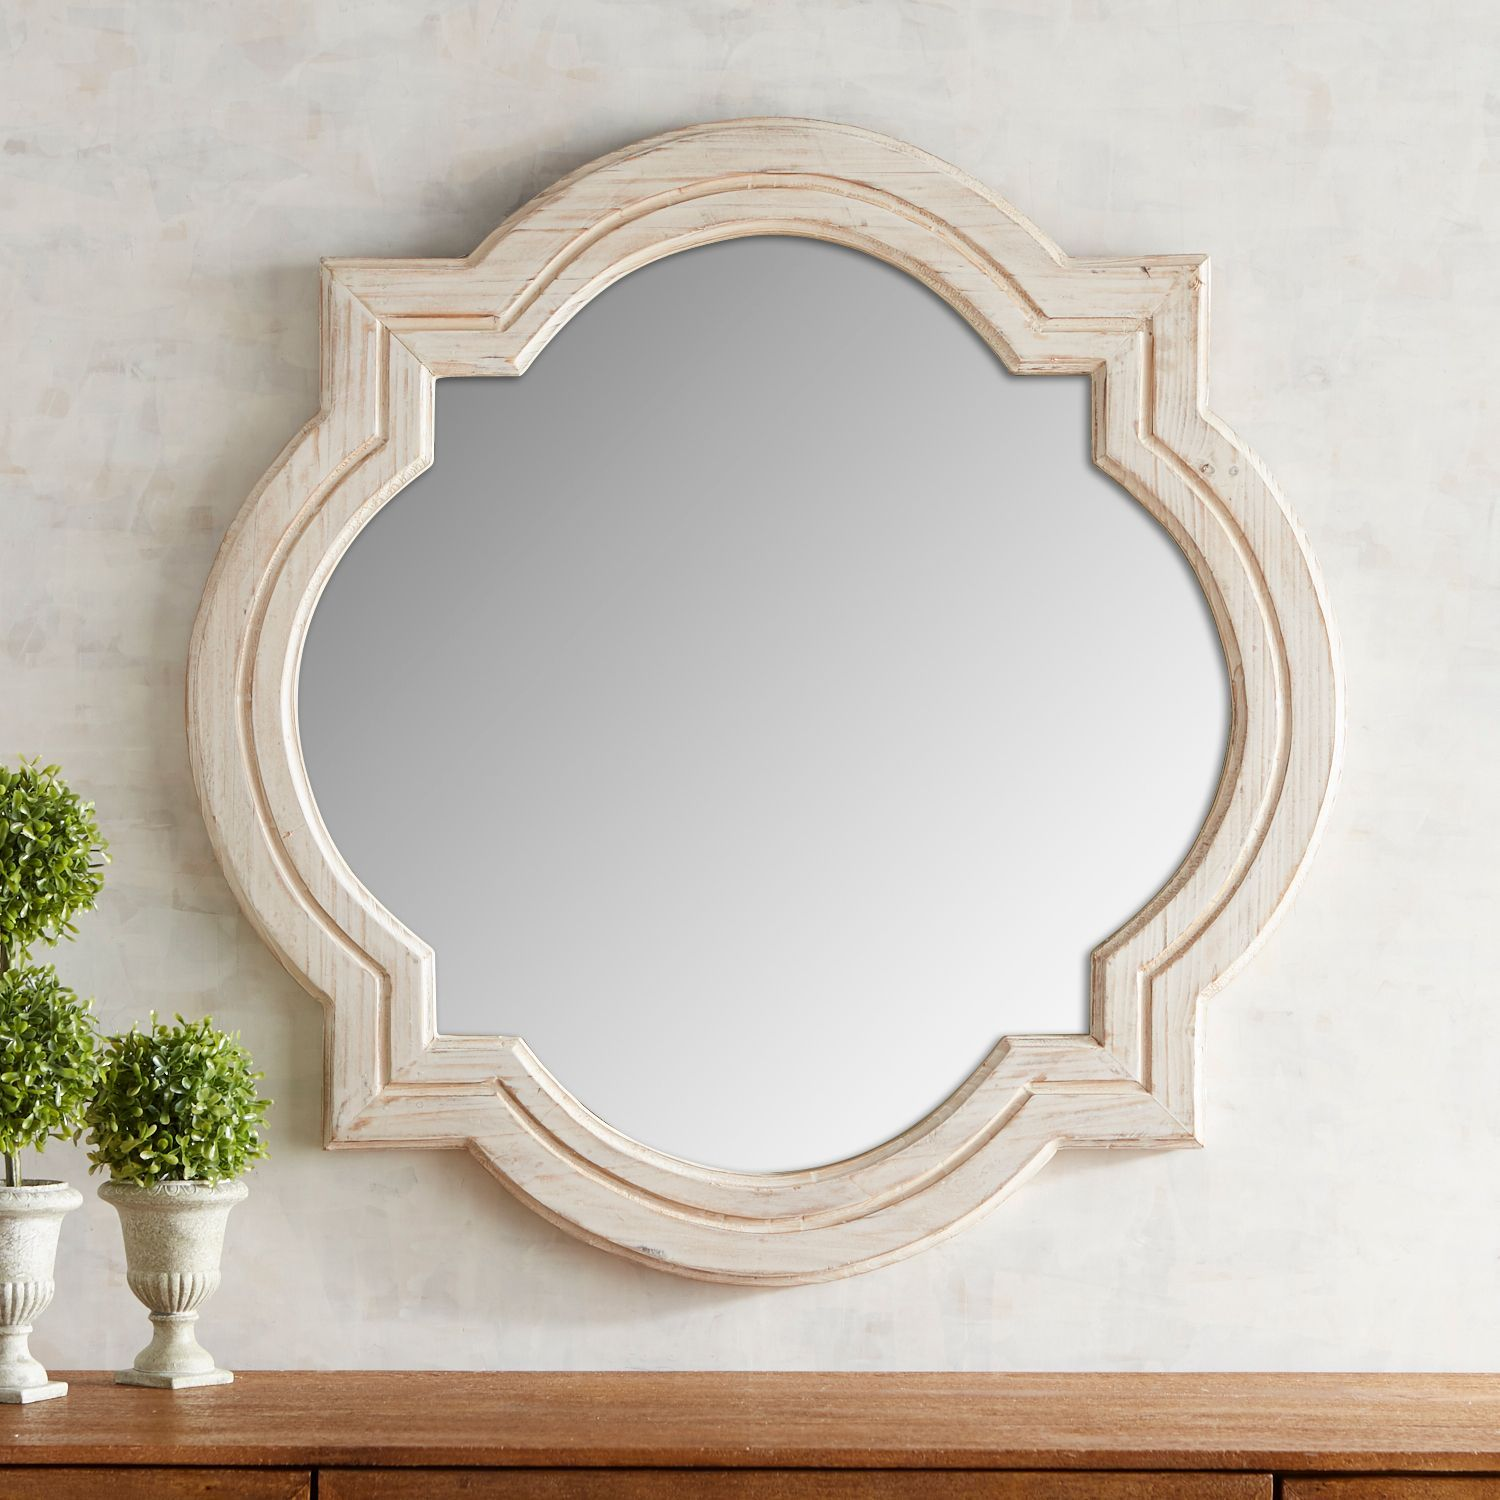 Whitewashed Quatrefoil Mirror Pier 1 Imports Antique Gold Mirror Mirror Mirror Wall Art